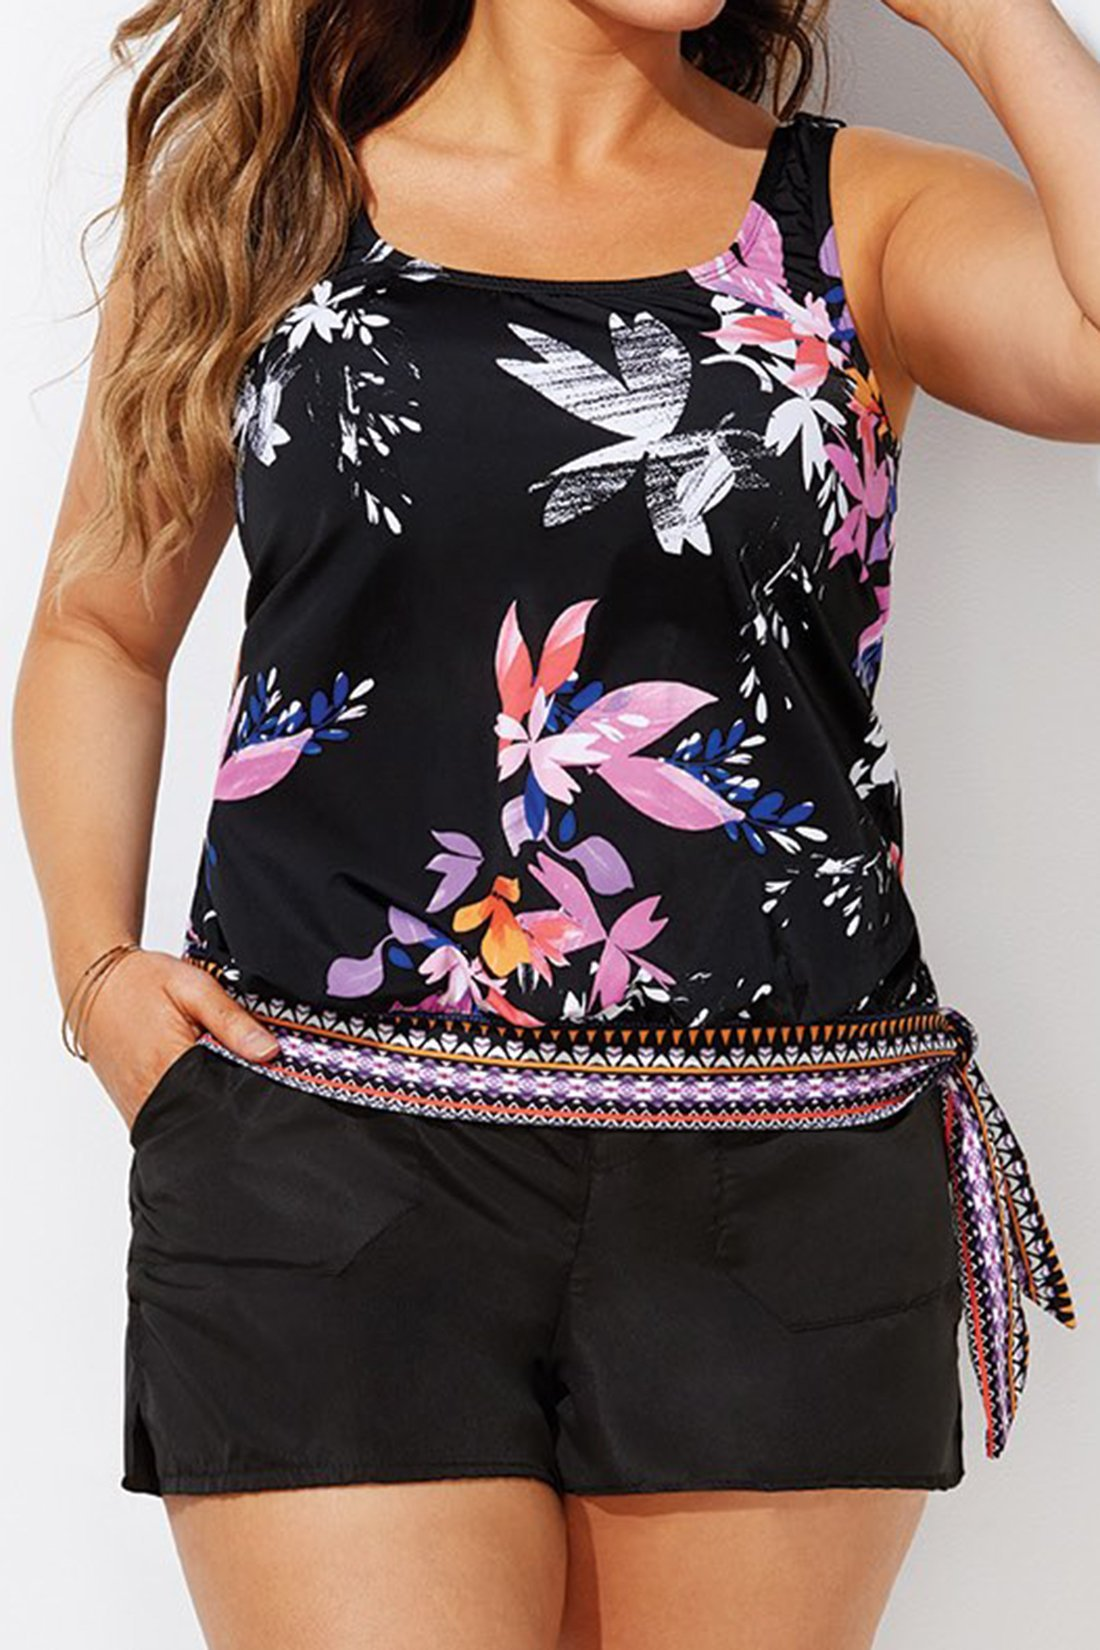 WINDFLOWER SIDE TIE BLOUSON TANKINI WITH CARGO SHORT choichic.com